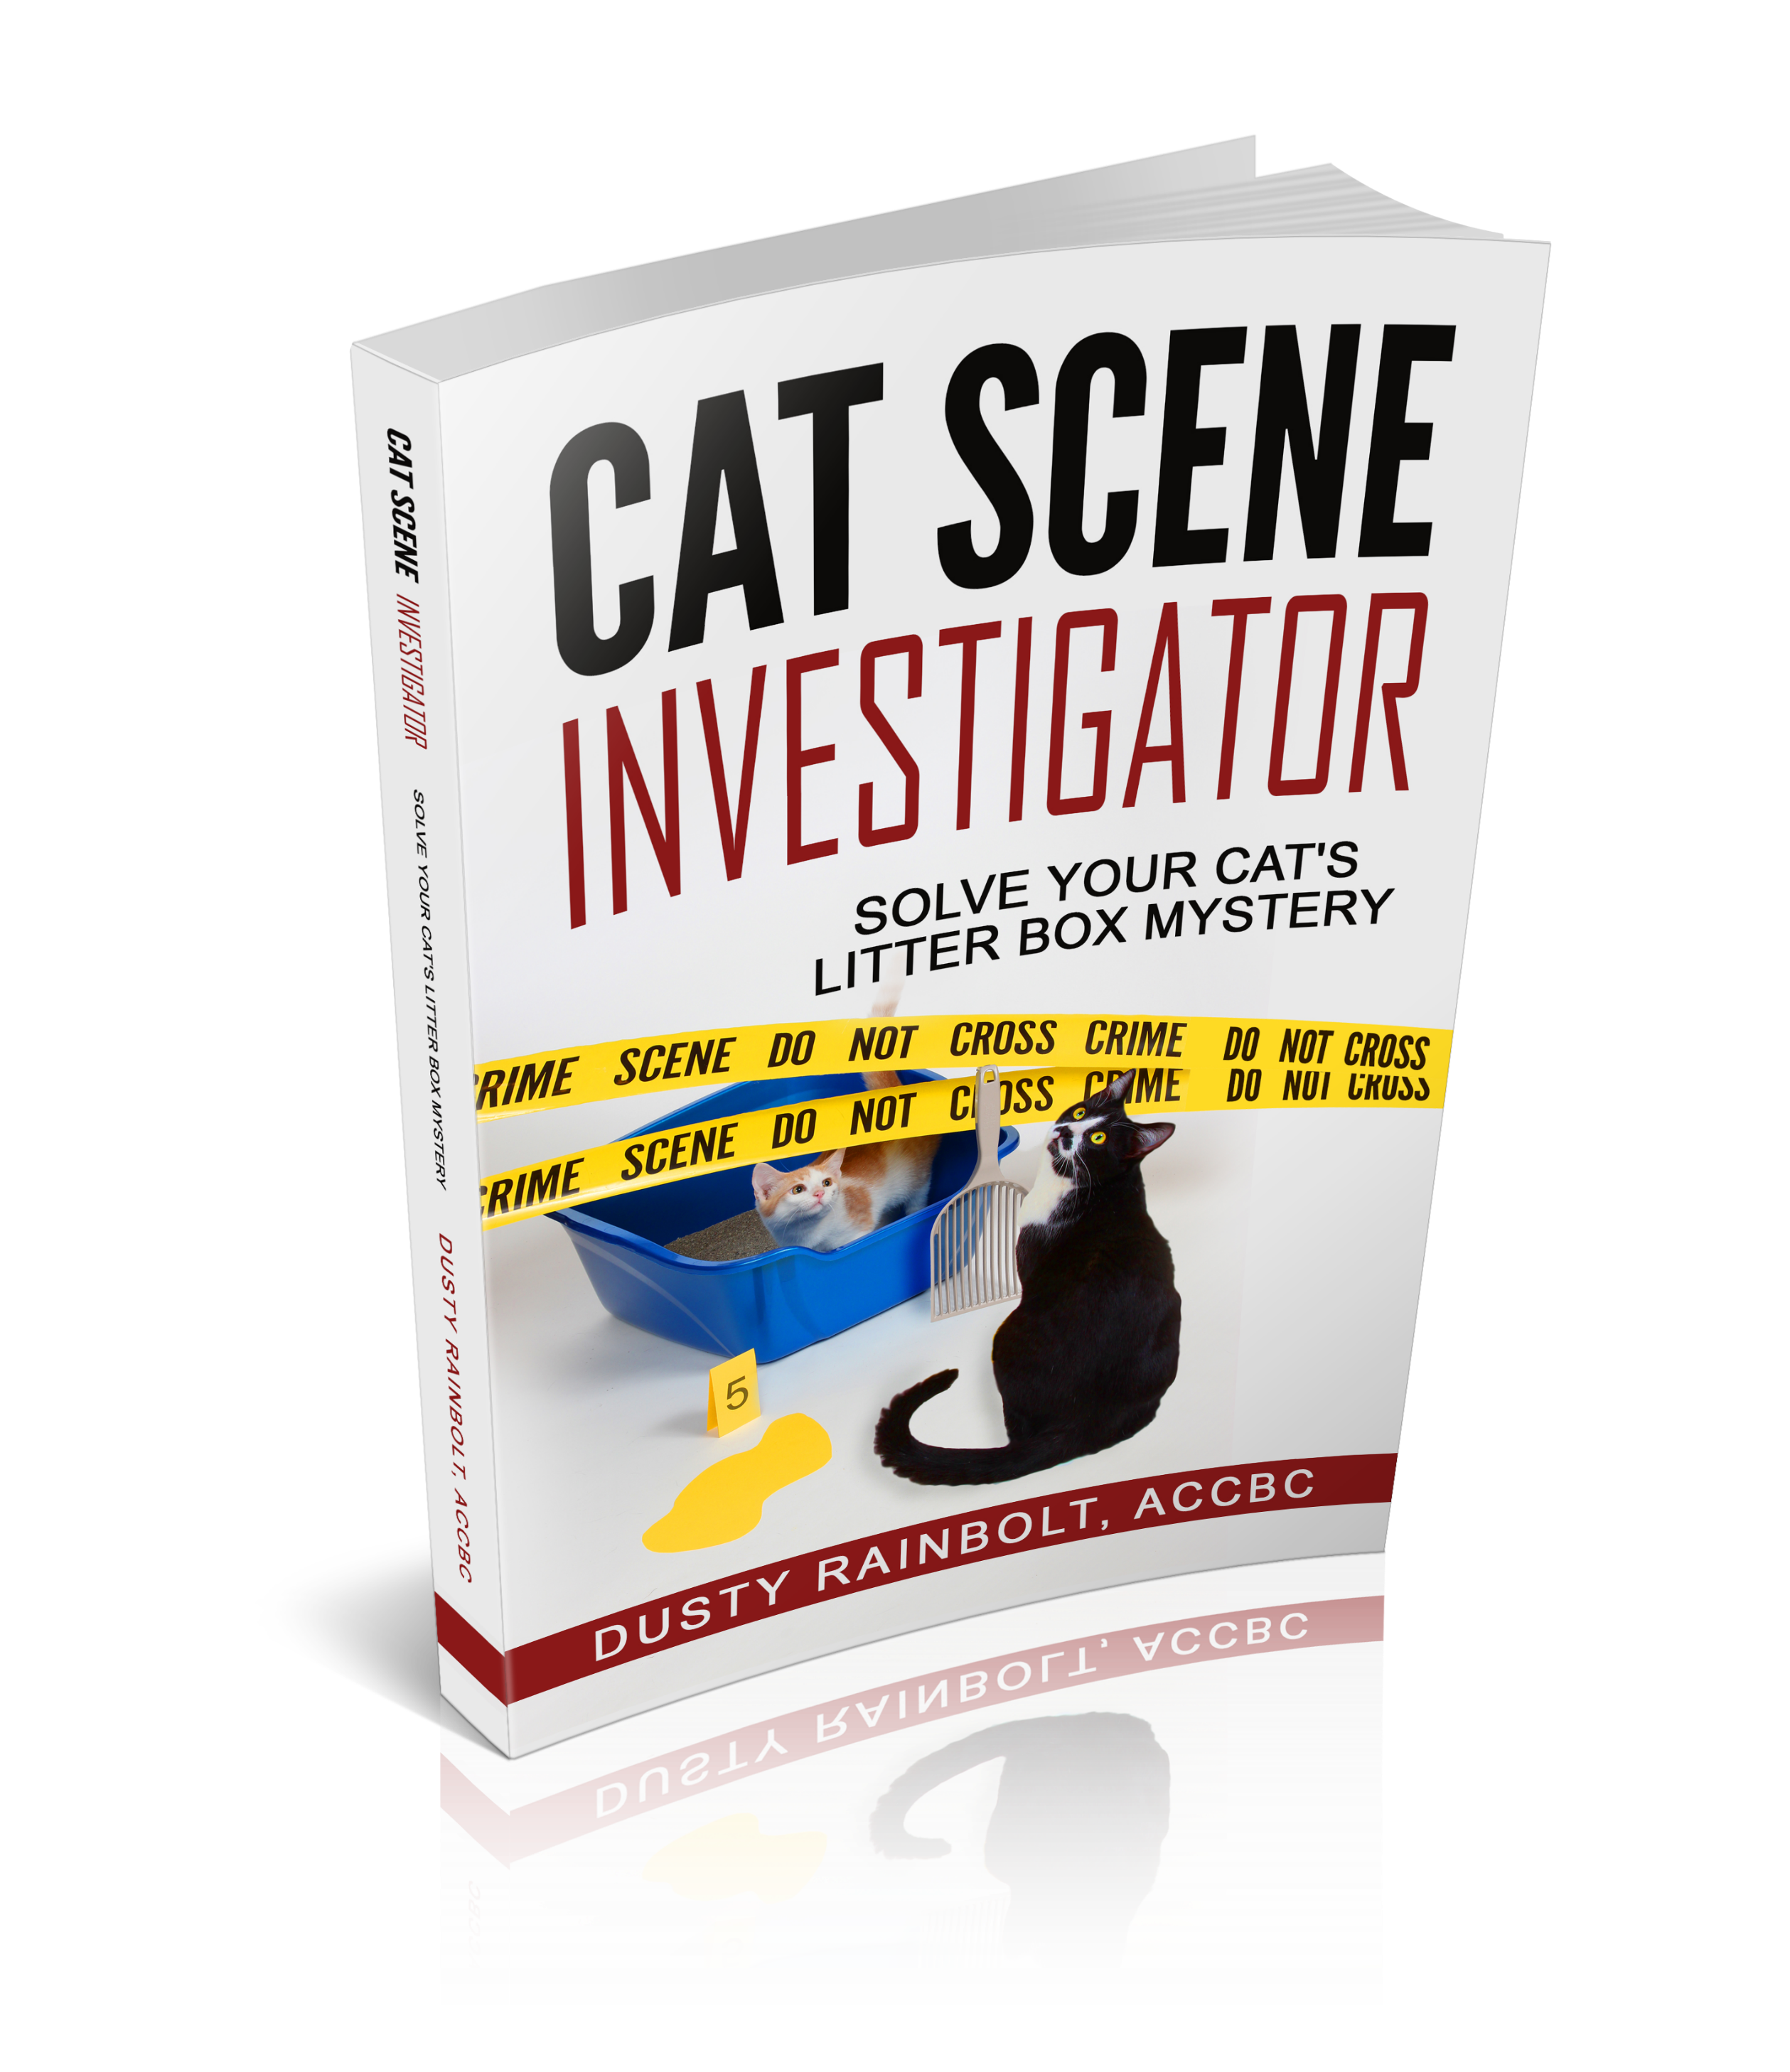 cat_scene_investigator-3_d-hi-resolution